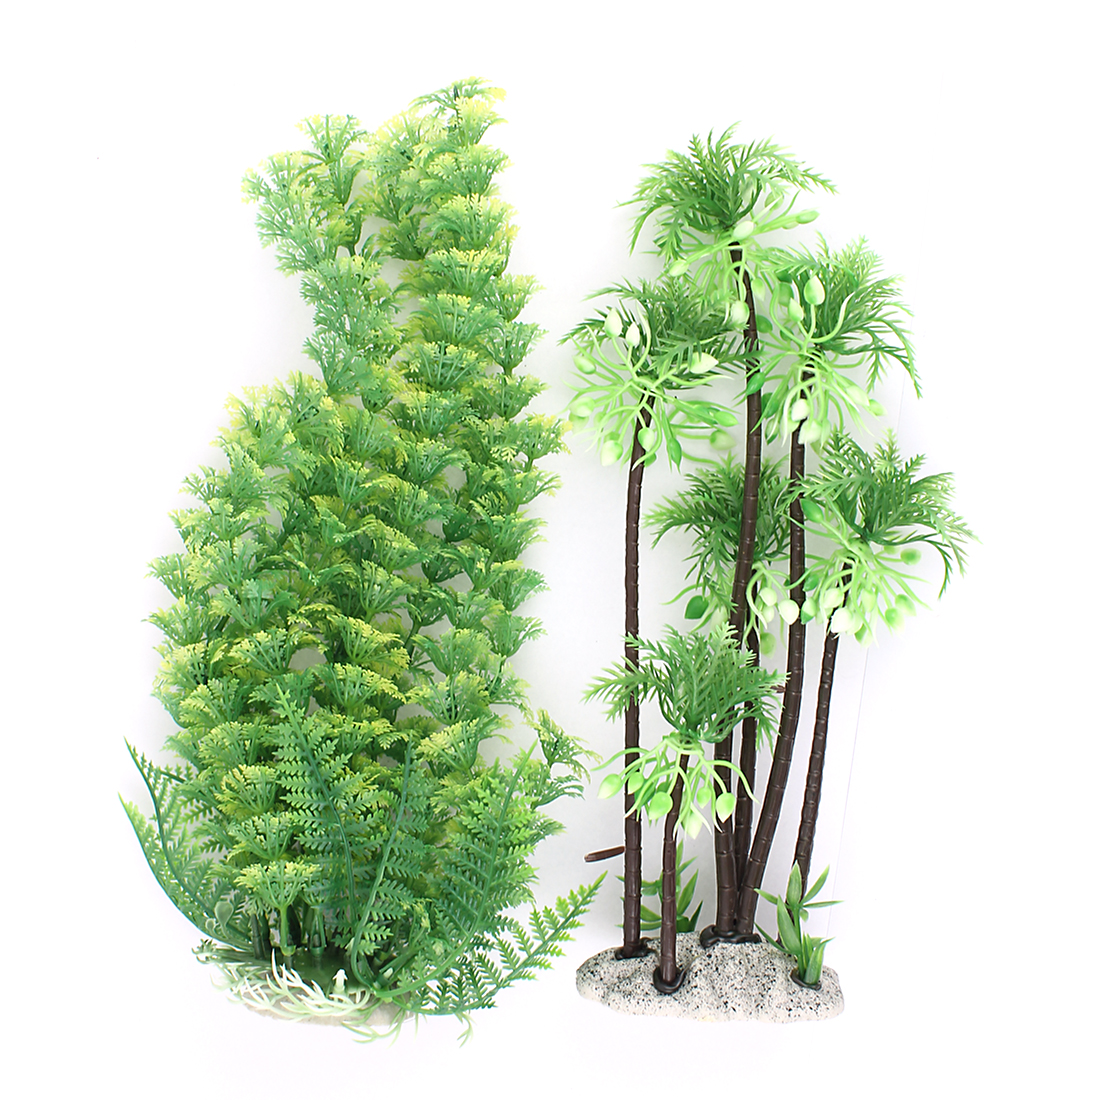 Underwater Simulation Aquatic Plant Fish Tank Aquarium Decor Green 2PCS